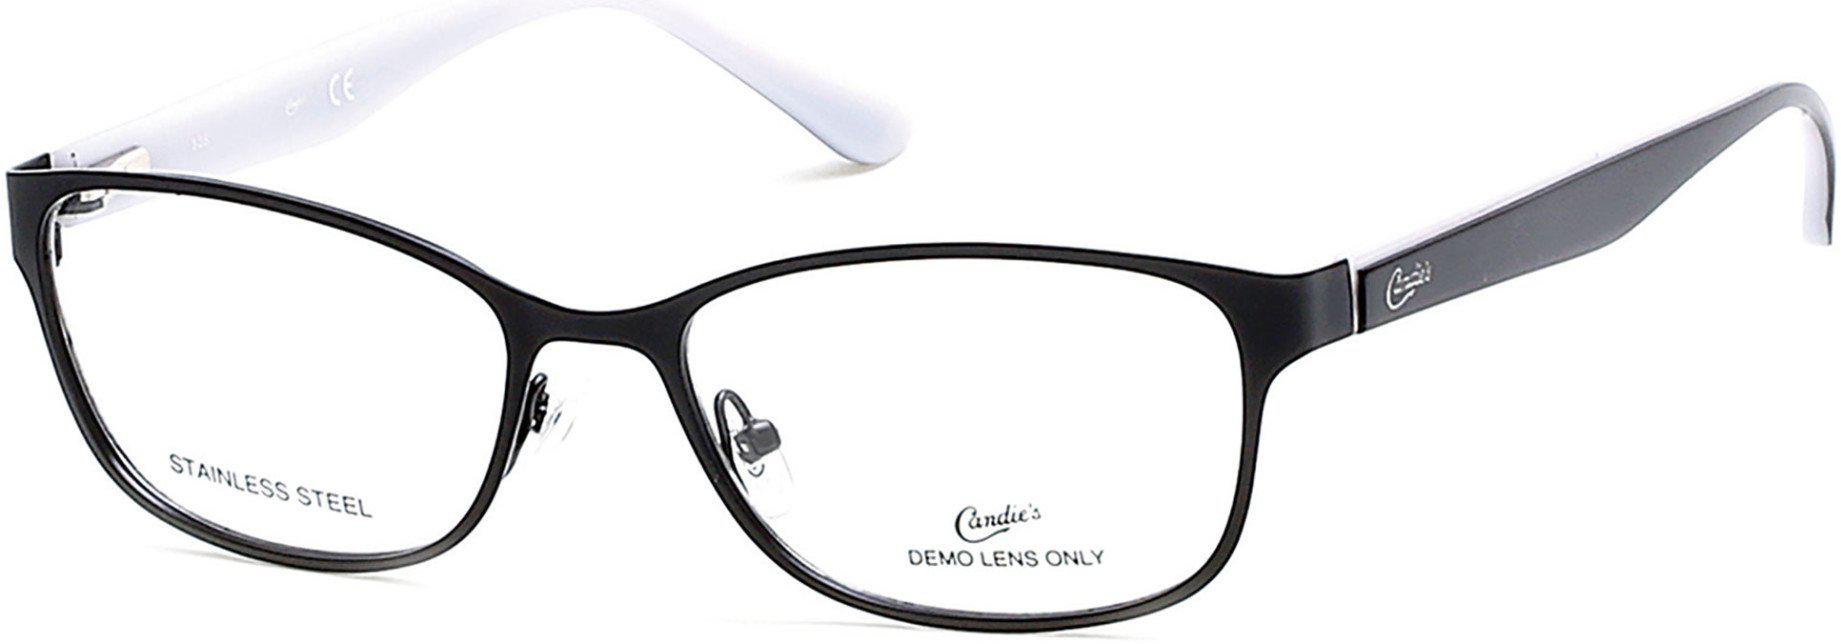 Candies CA0135 Geometric Eyeglasses 005-005 - Black/other